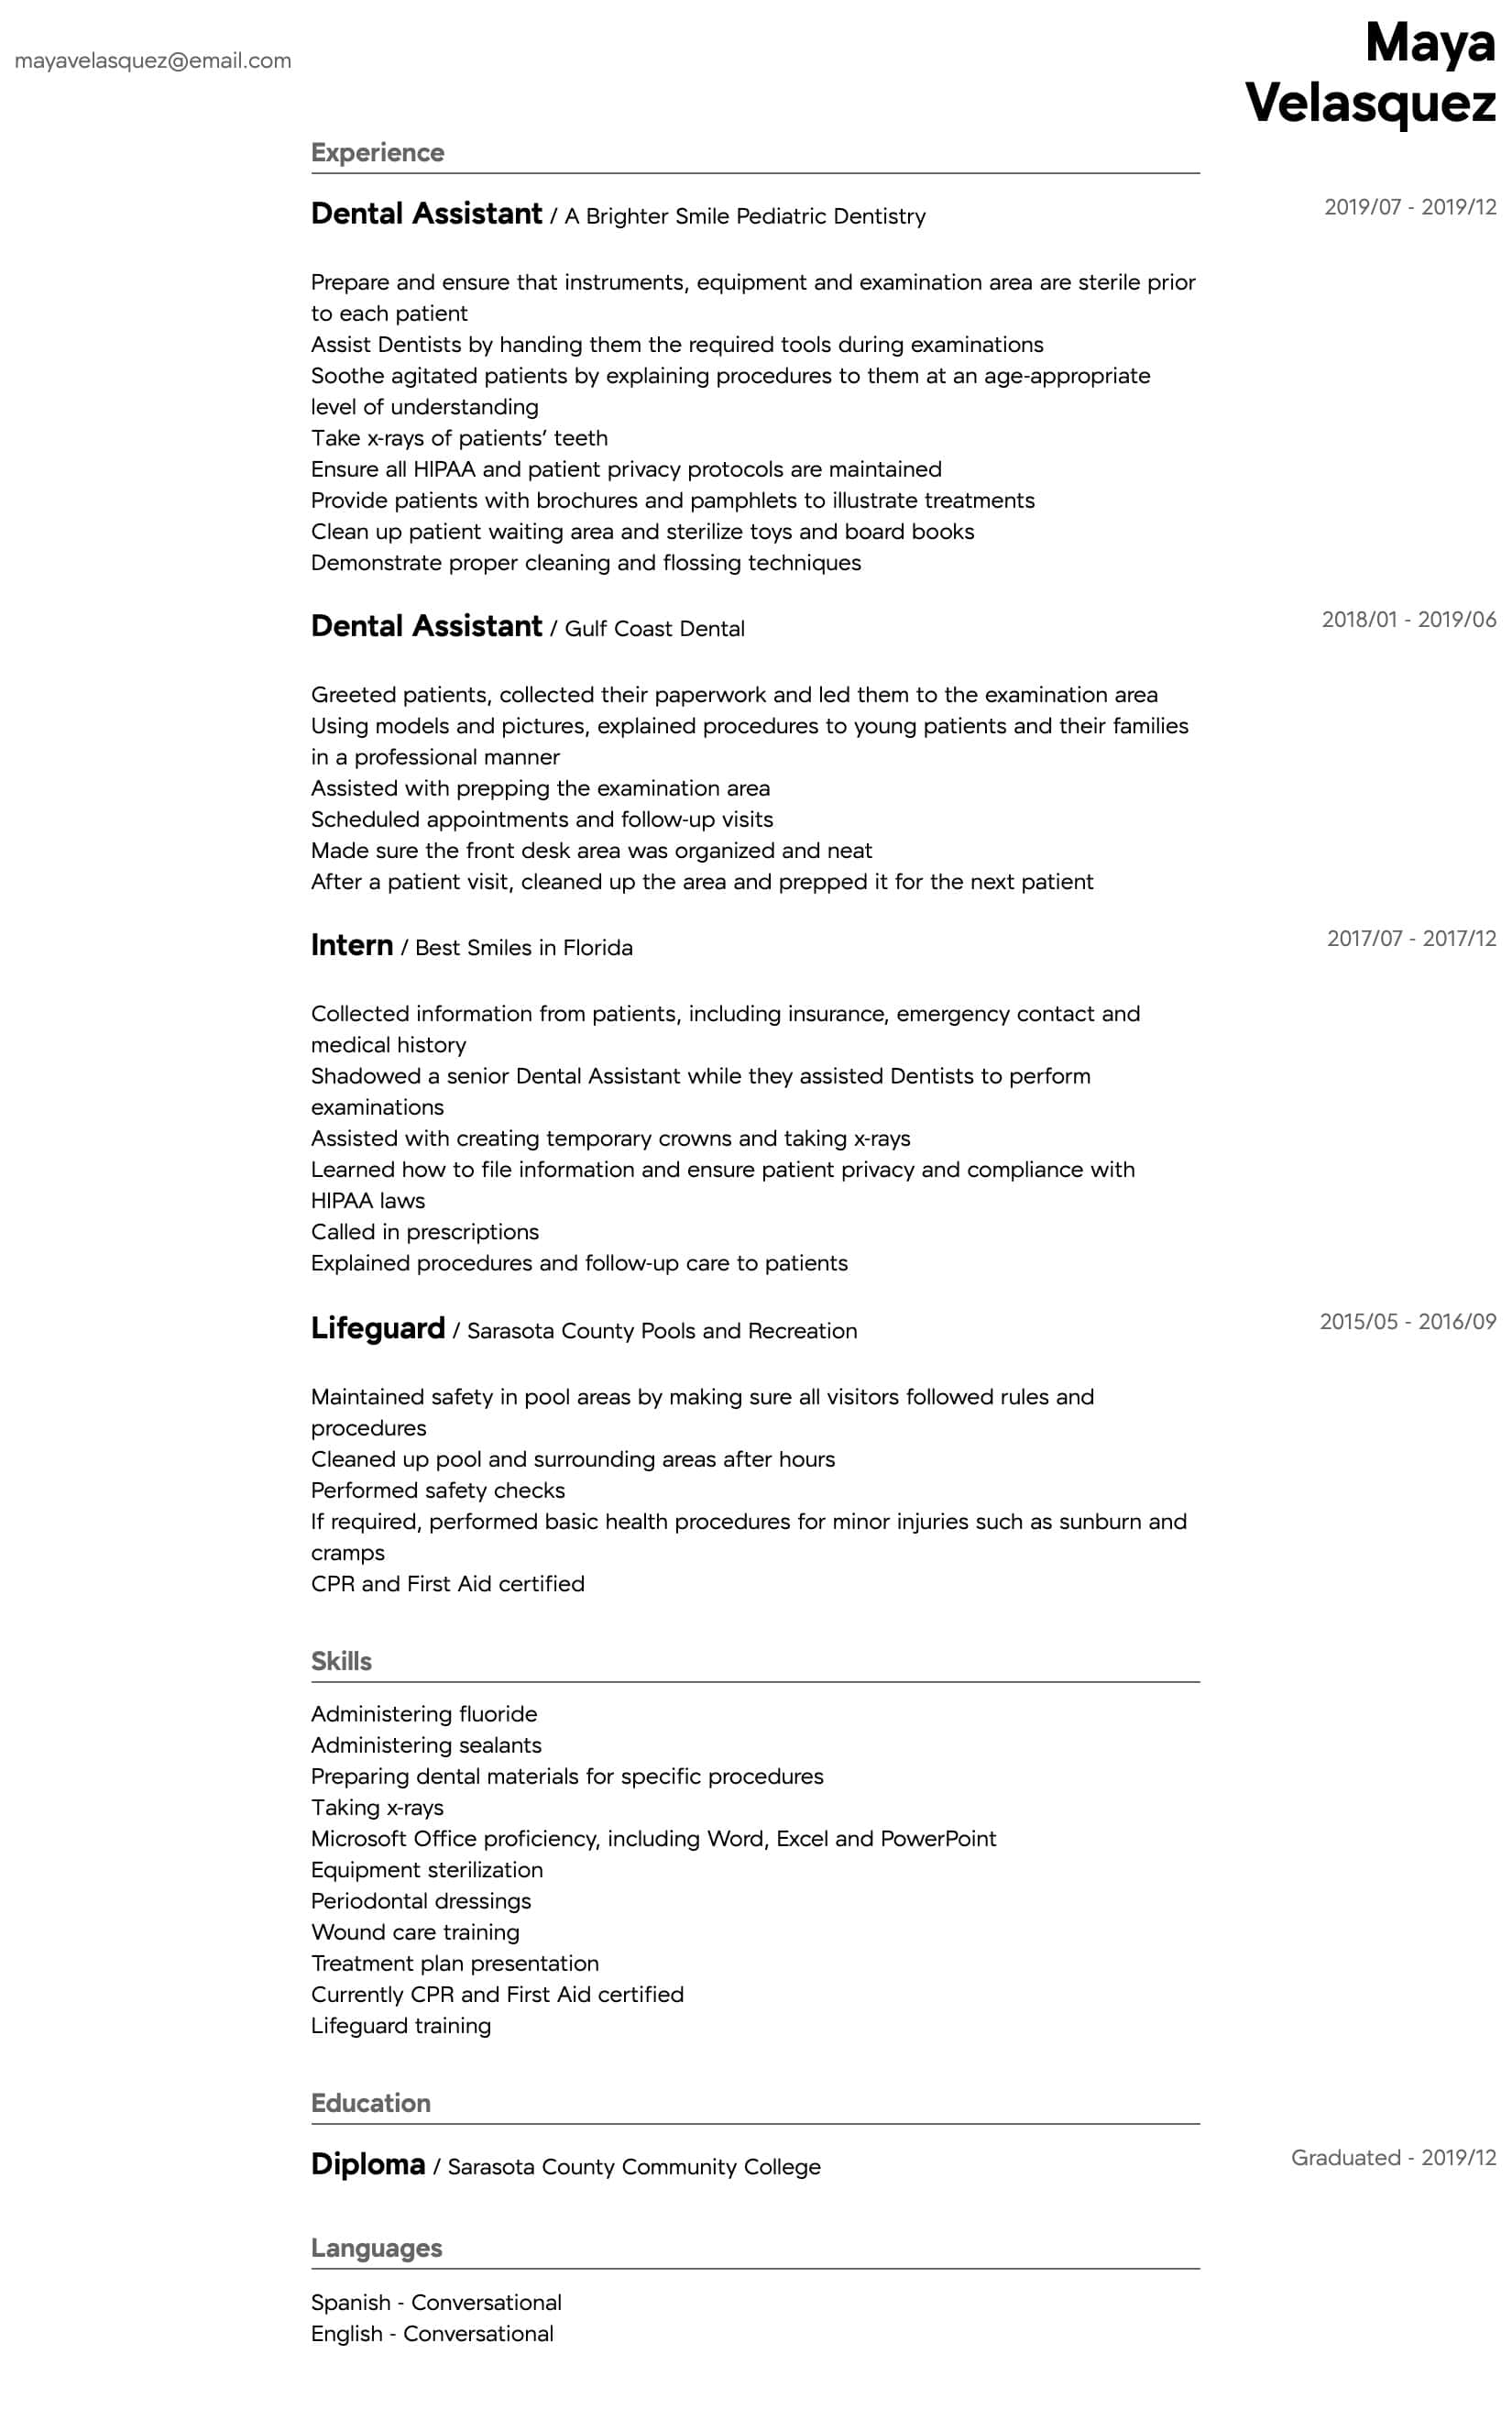 Dental Assistant Resume Samples All Experience Levels Resume Com Resume Com